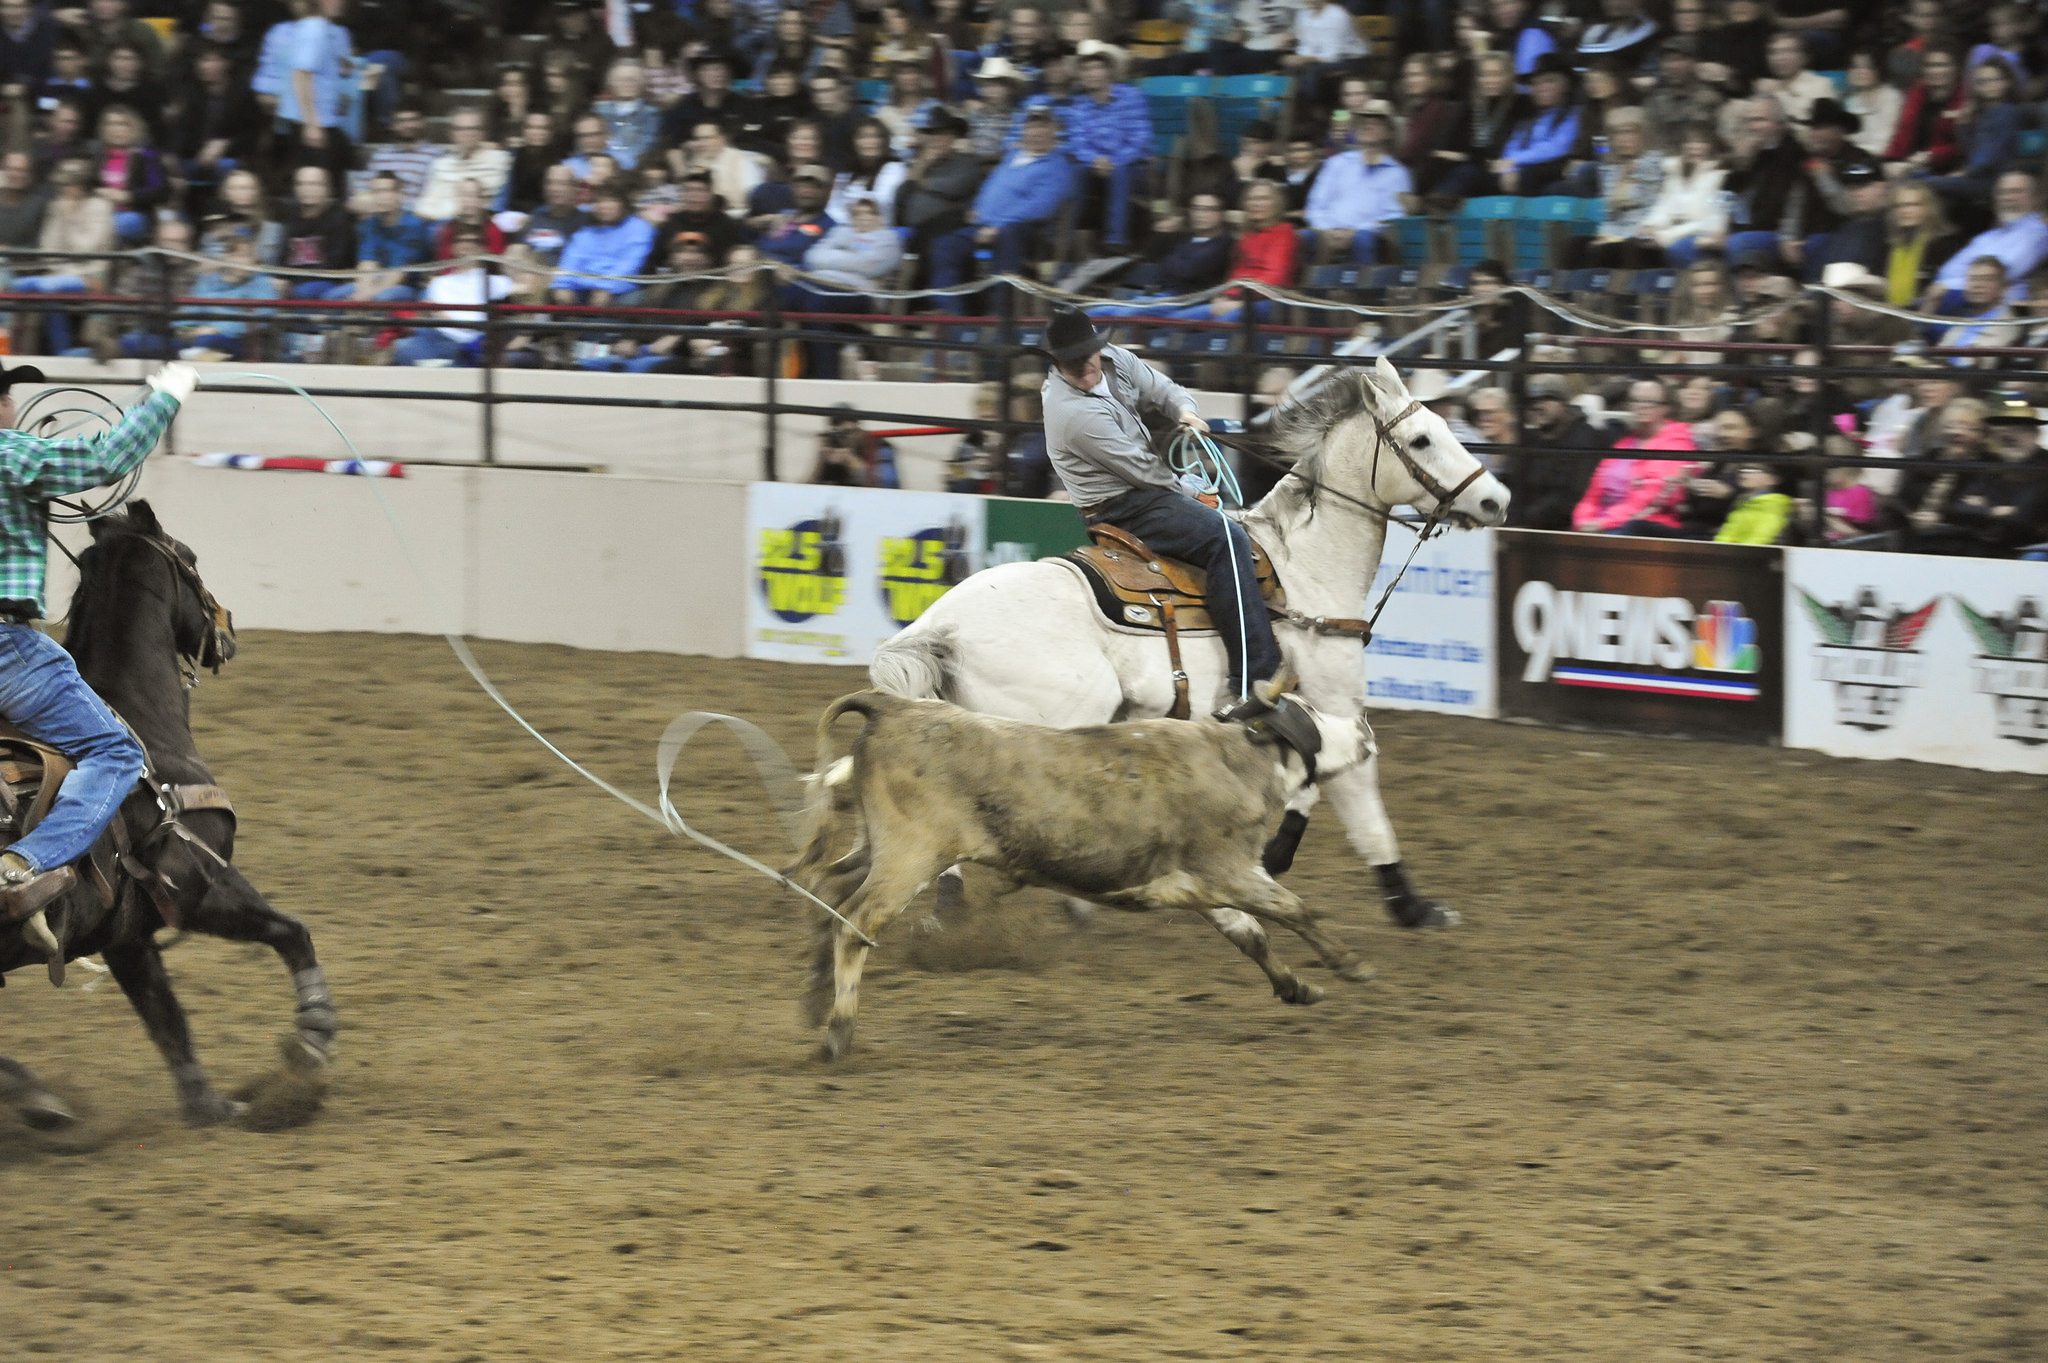 The National Western Stock Show hosted a Military and Veterans Appreciation Rodeo Jan. 20, 2015, in the Denver Coliseum. (U.S. Army National Guard photo by 1st Lt. Skye Robinson/Released)